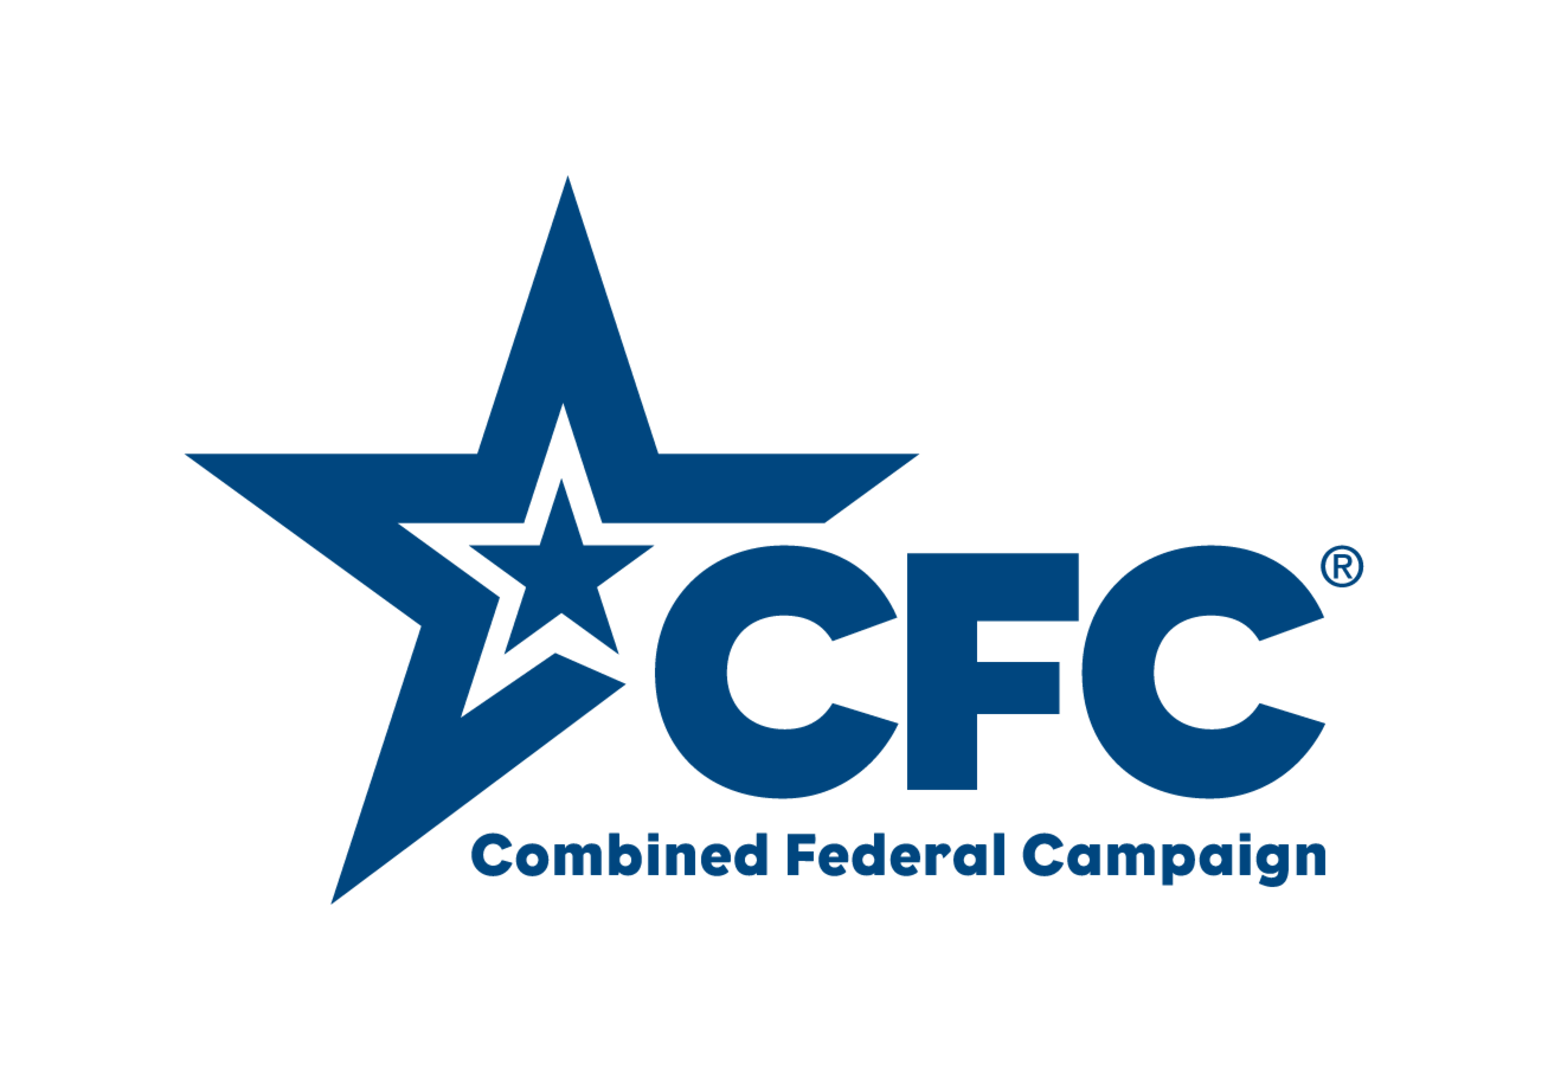 Blue star imposed inside another blue star with the words Combined Federal Campaign